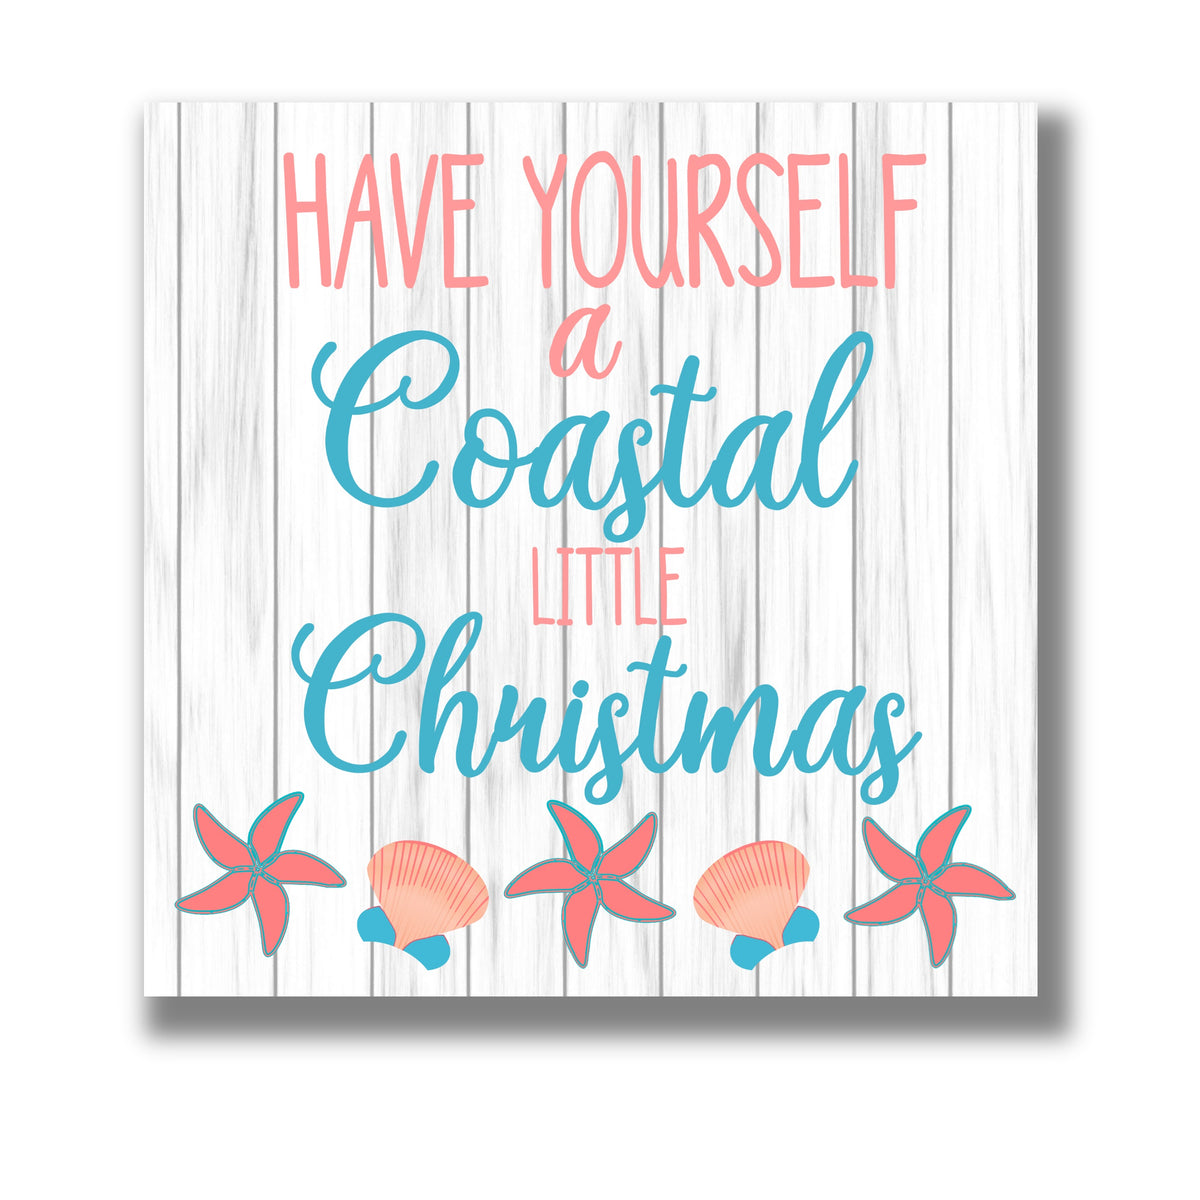 Have Yourself a Coastal Little Christmas 12x12 Beach Themed Canvas